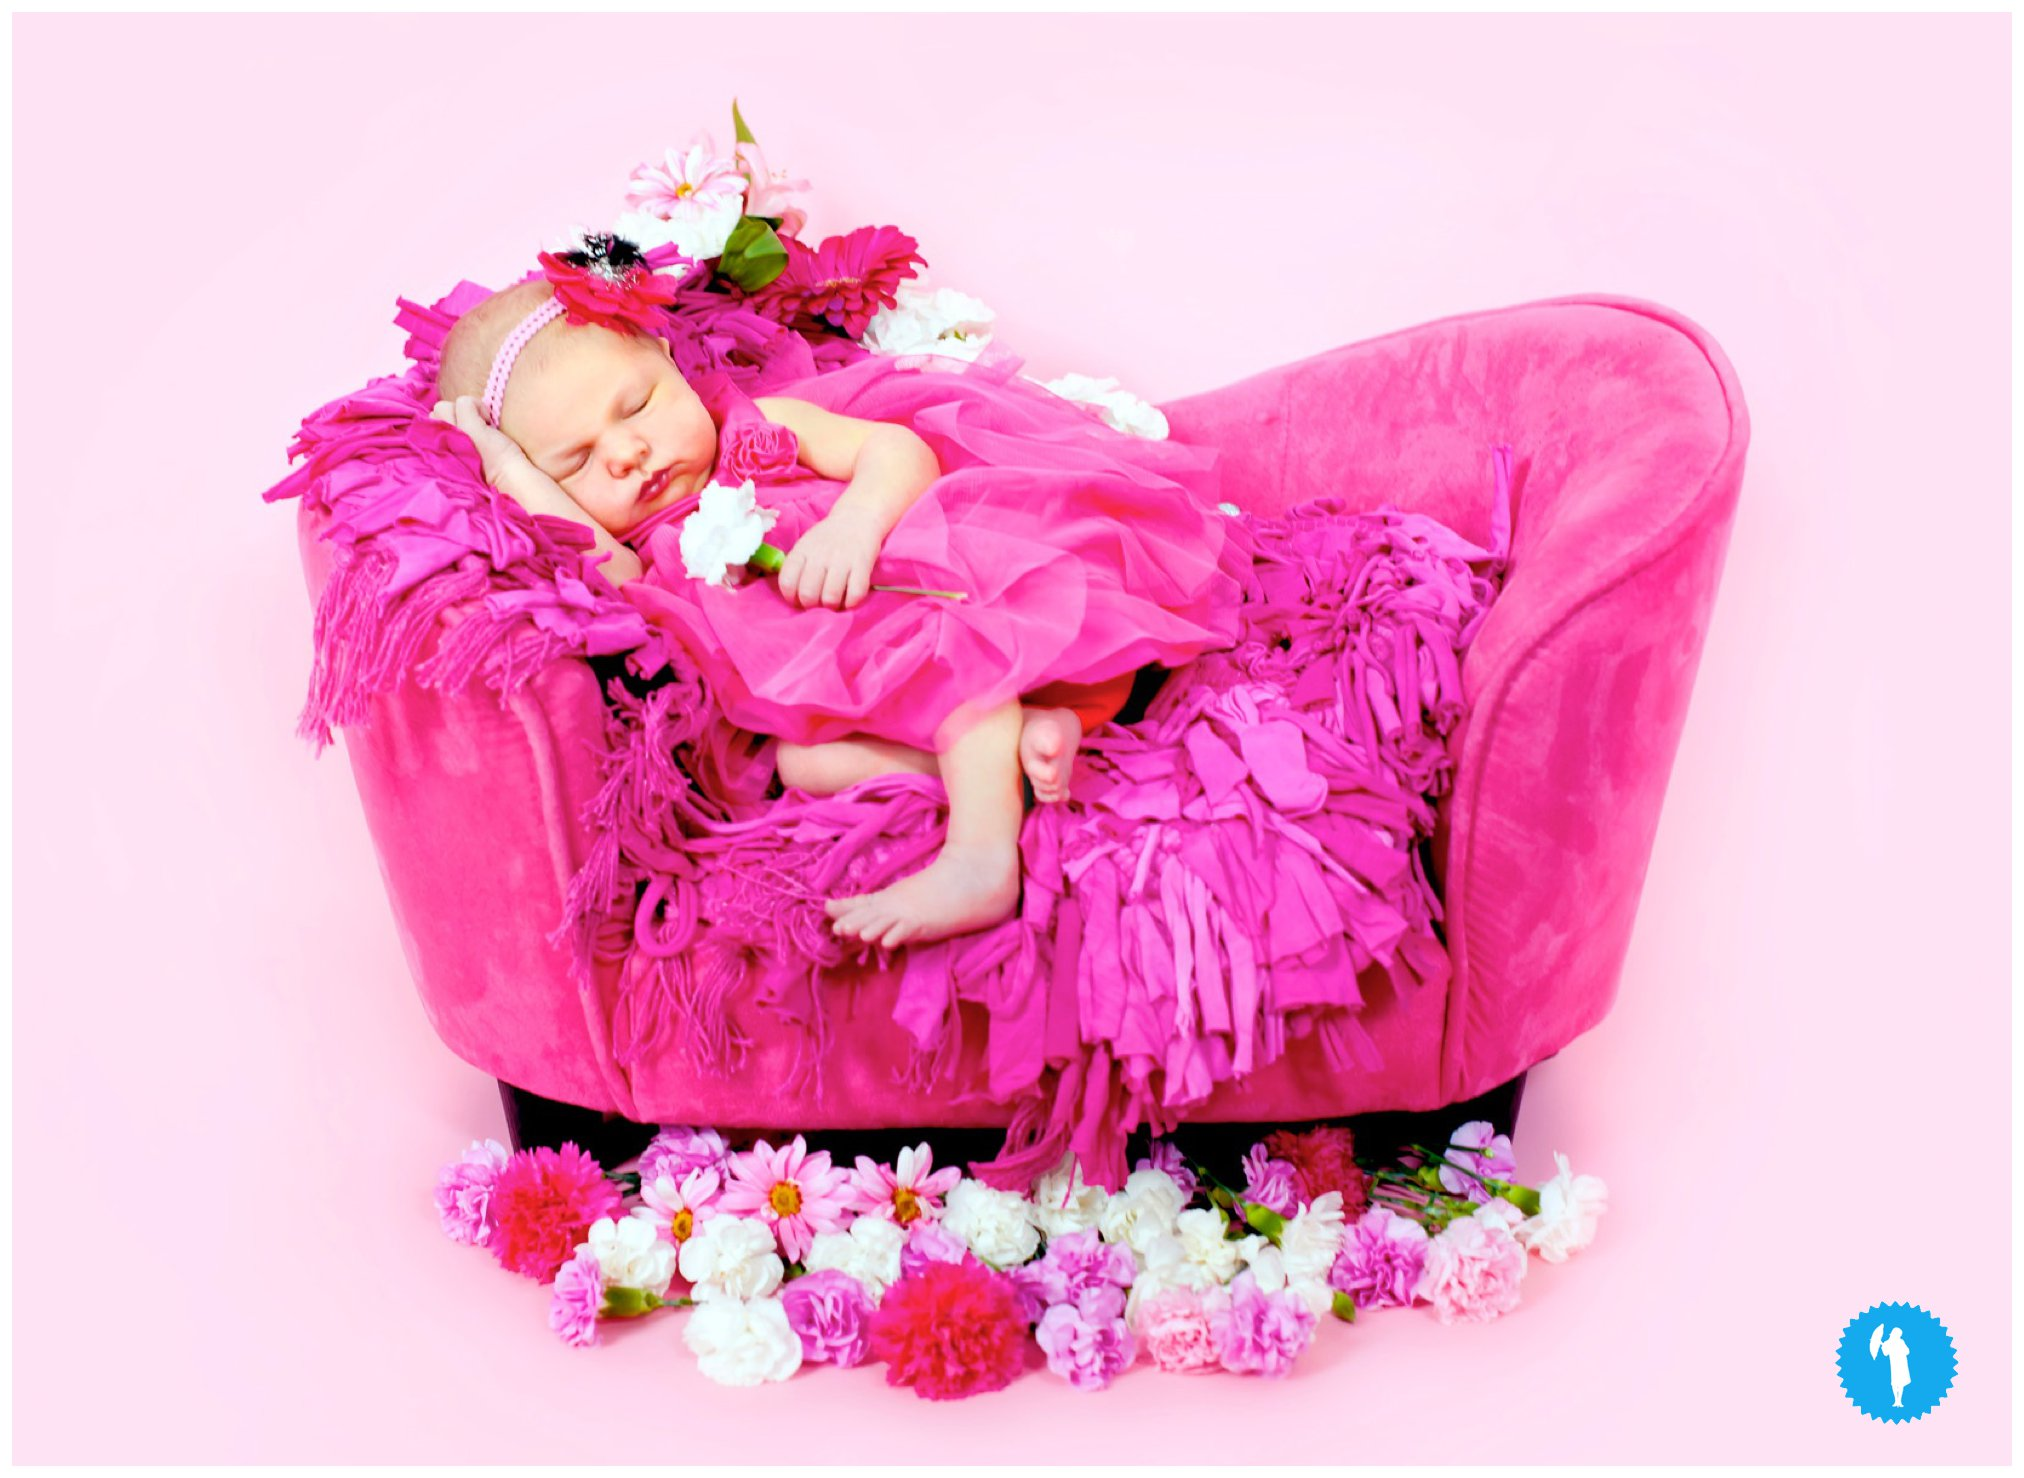 Newborn photography in Kitchener, by Emily Beatty Imagery.